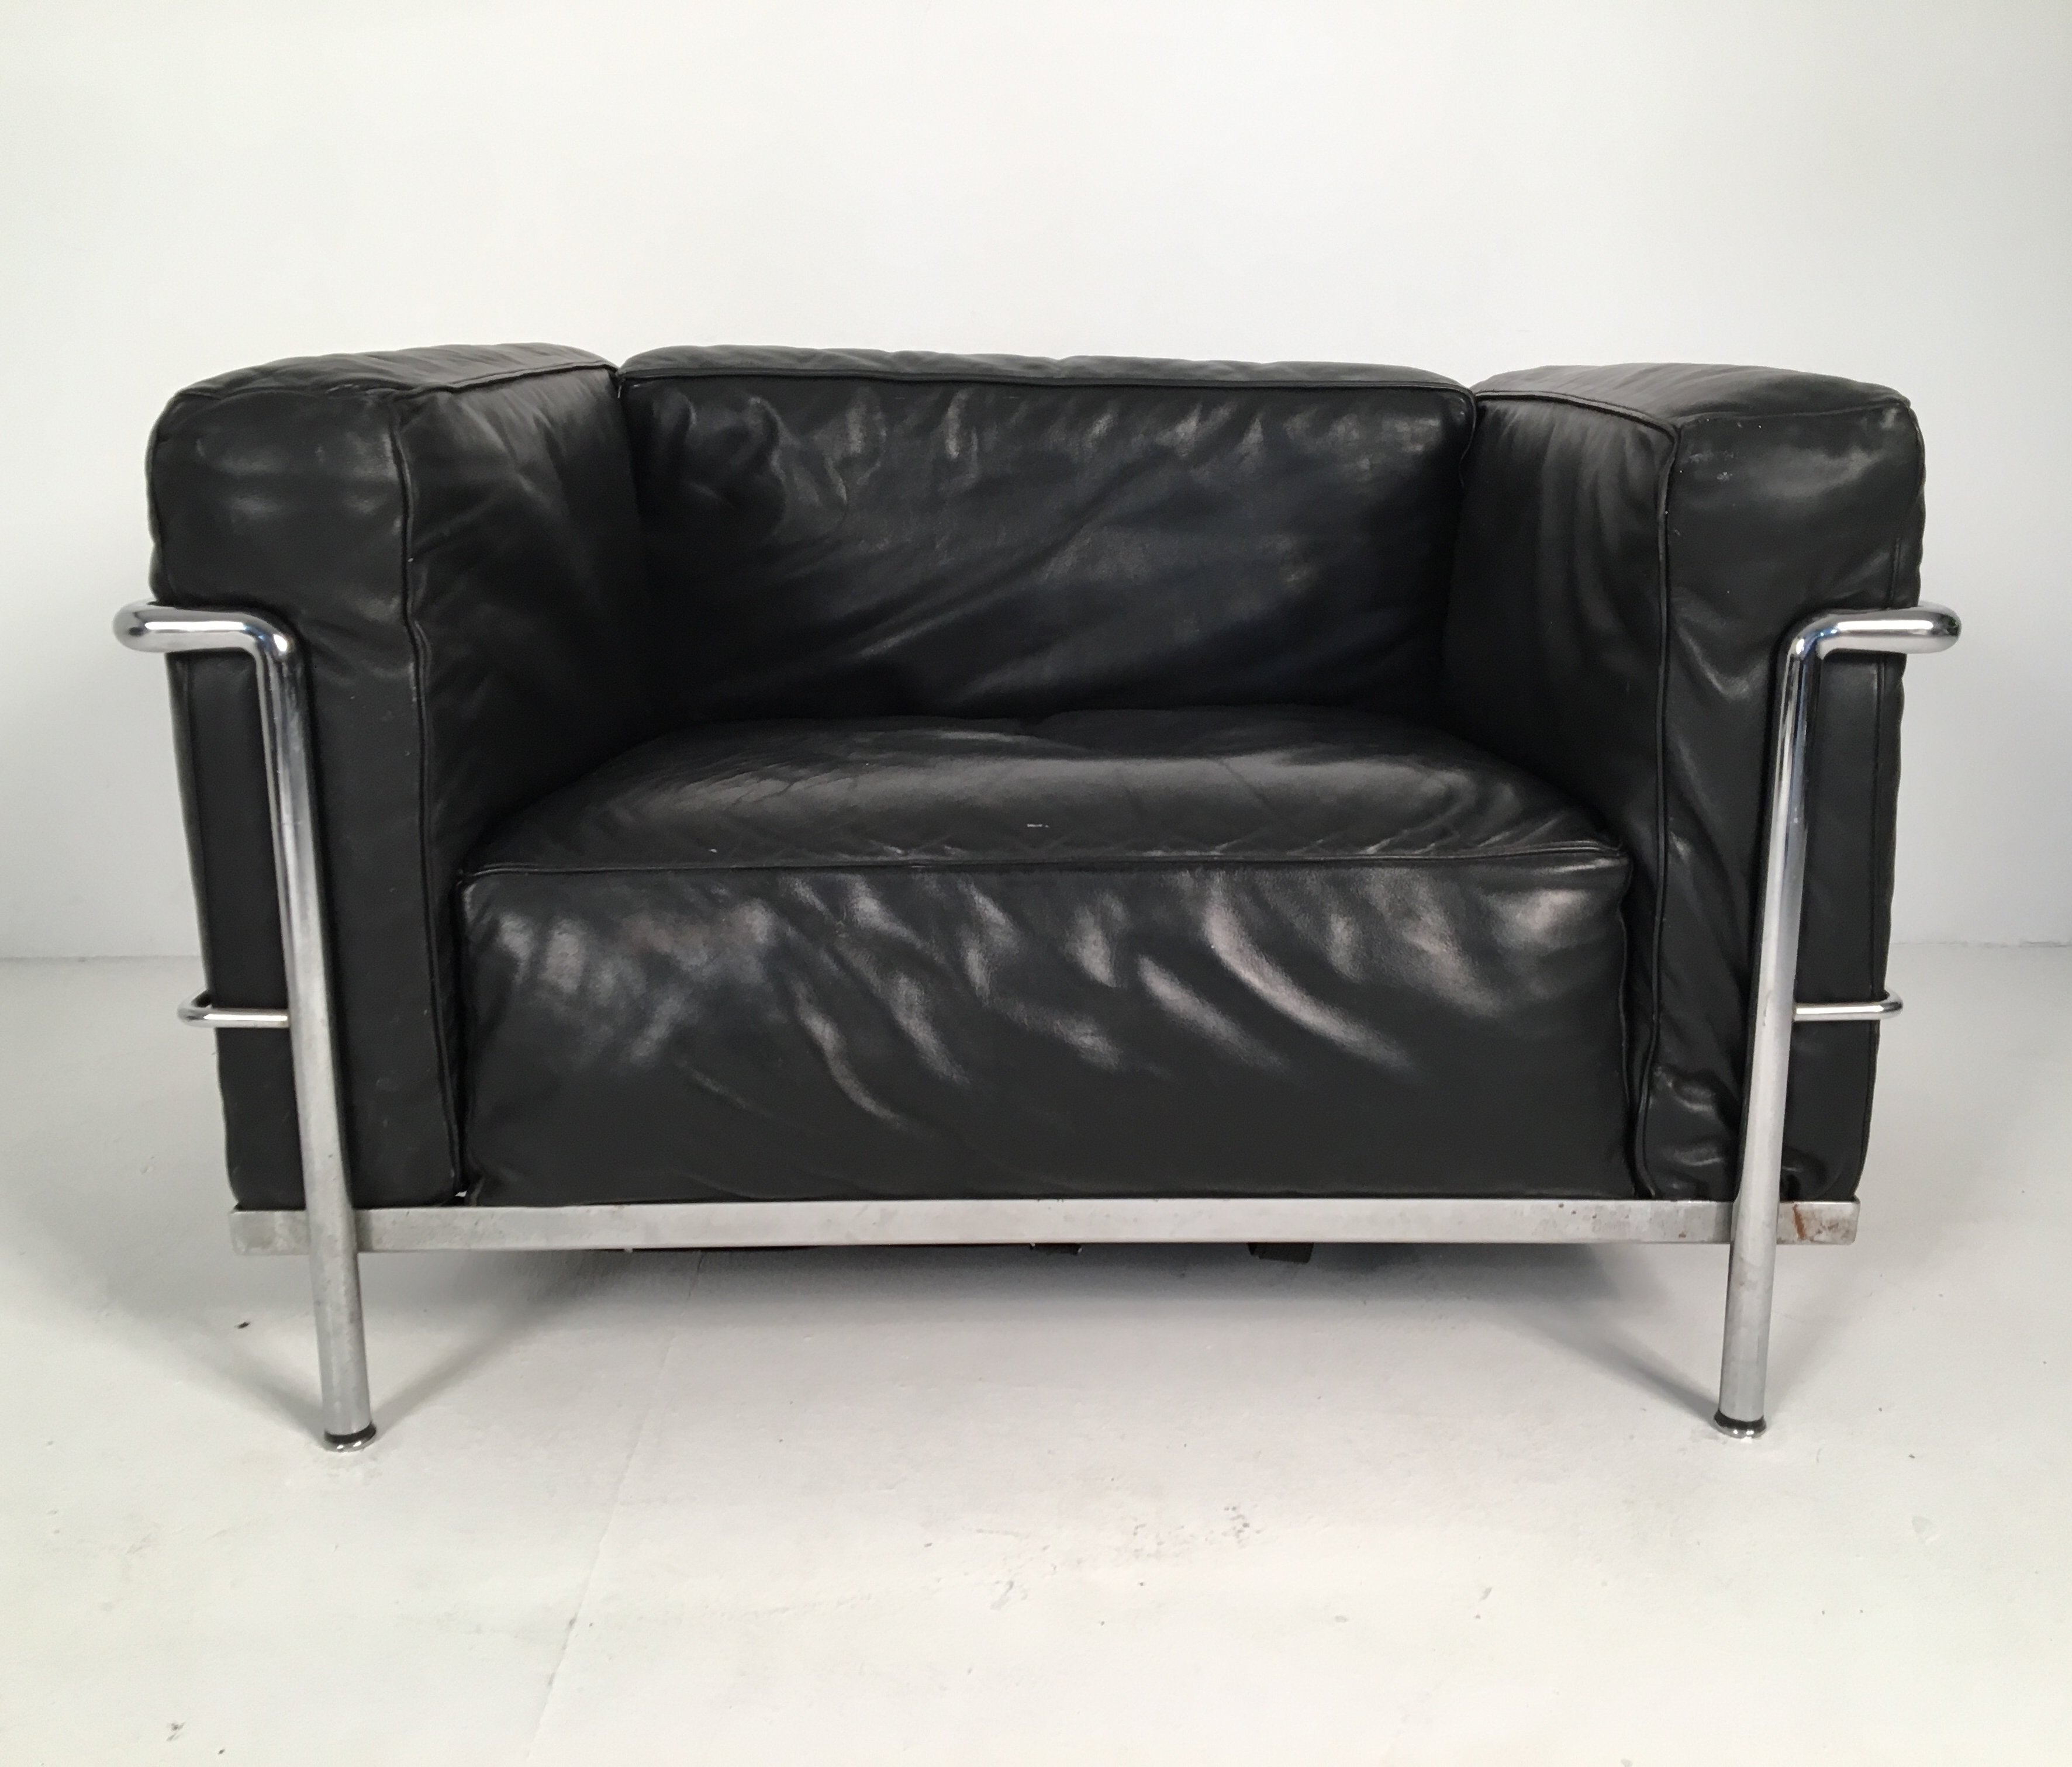 Mid Late 20th Century Lc3 Armchair By Le Corbusier For Cassina 90361